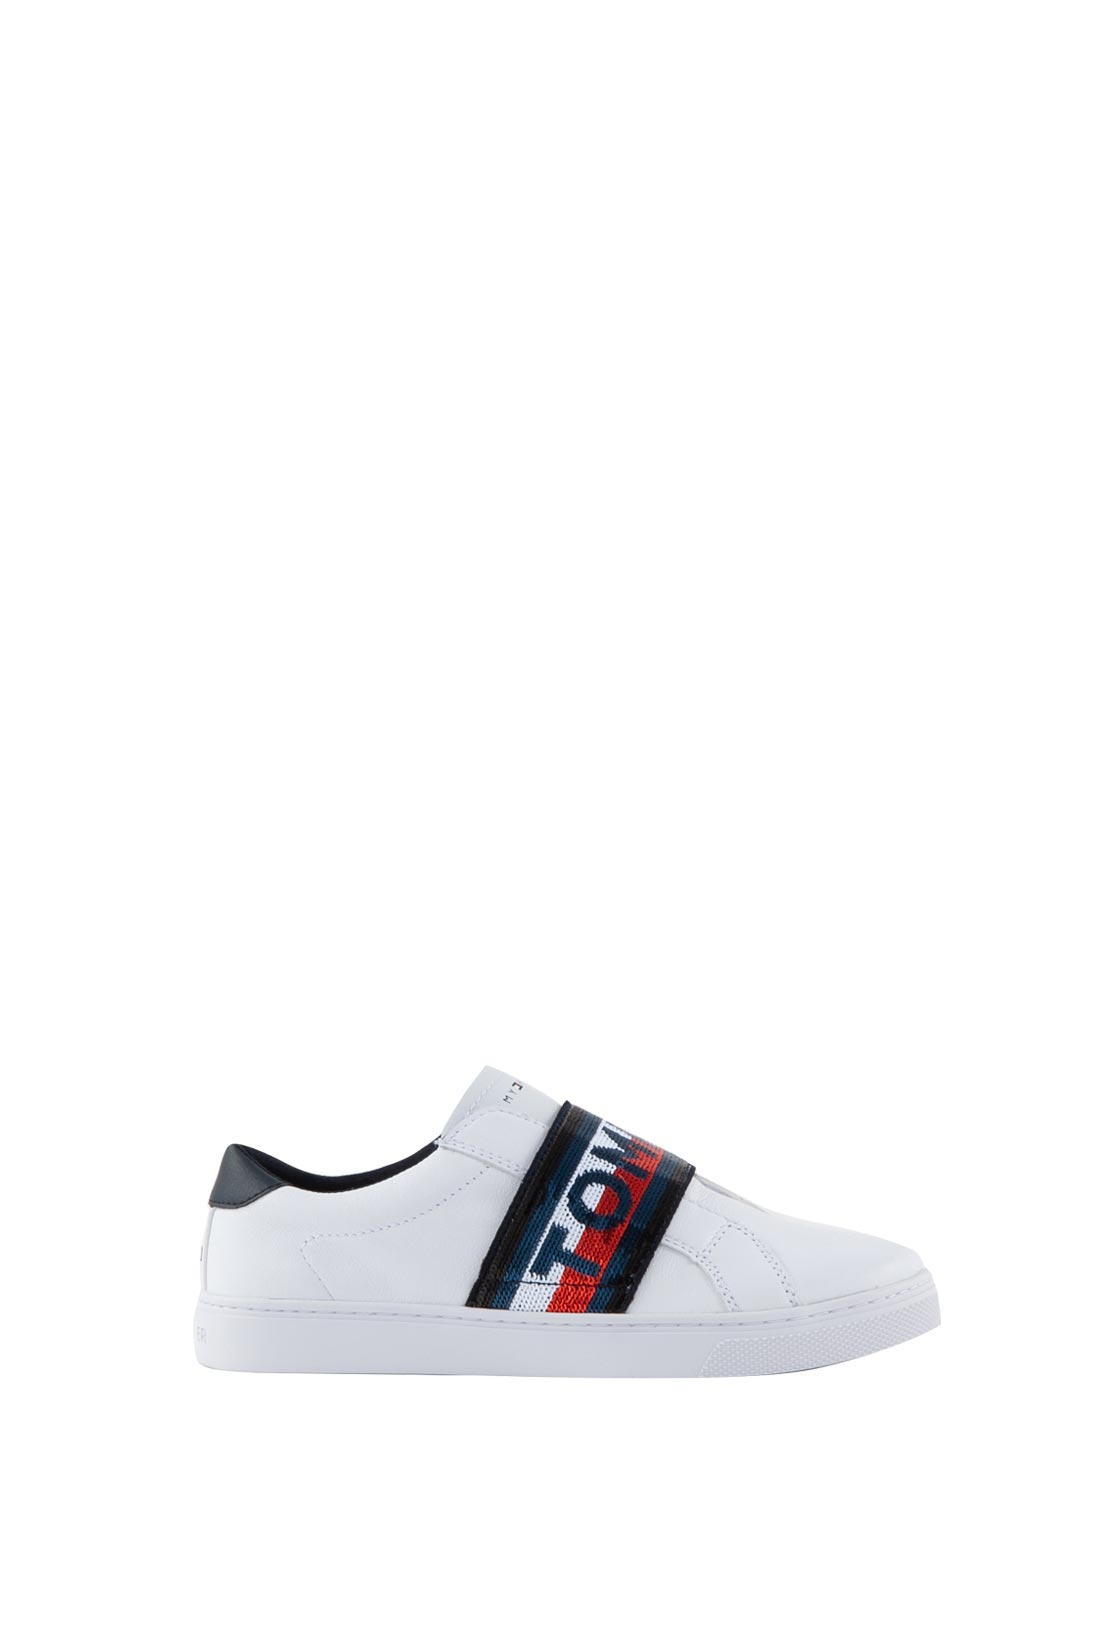 Sandy definite puppy  TOMMY HILFIGER - Sneakers donna slip on bianche con glitter - Push96.com